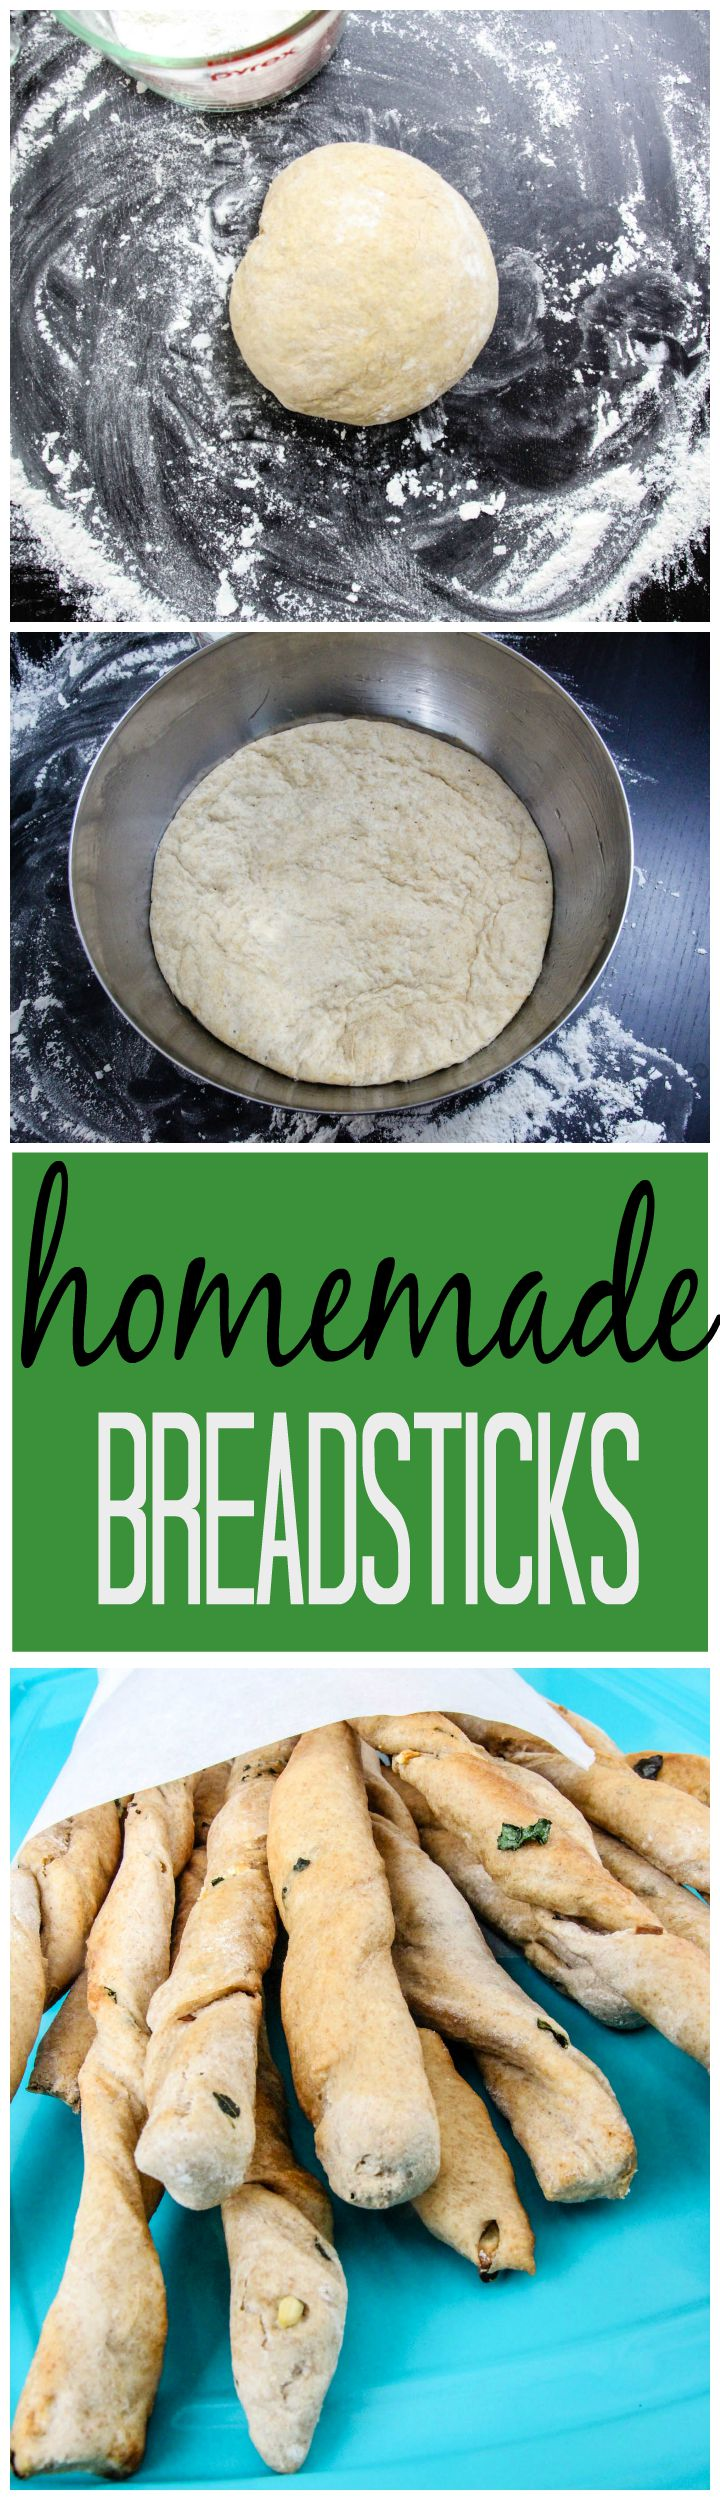 This is an easy kale recipe that your whole family will love! Making homemade breadsticks has never been easier. Bread recipes